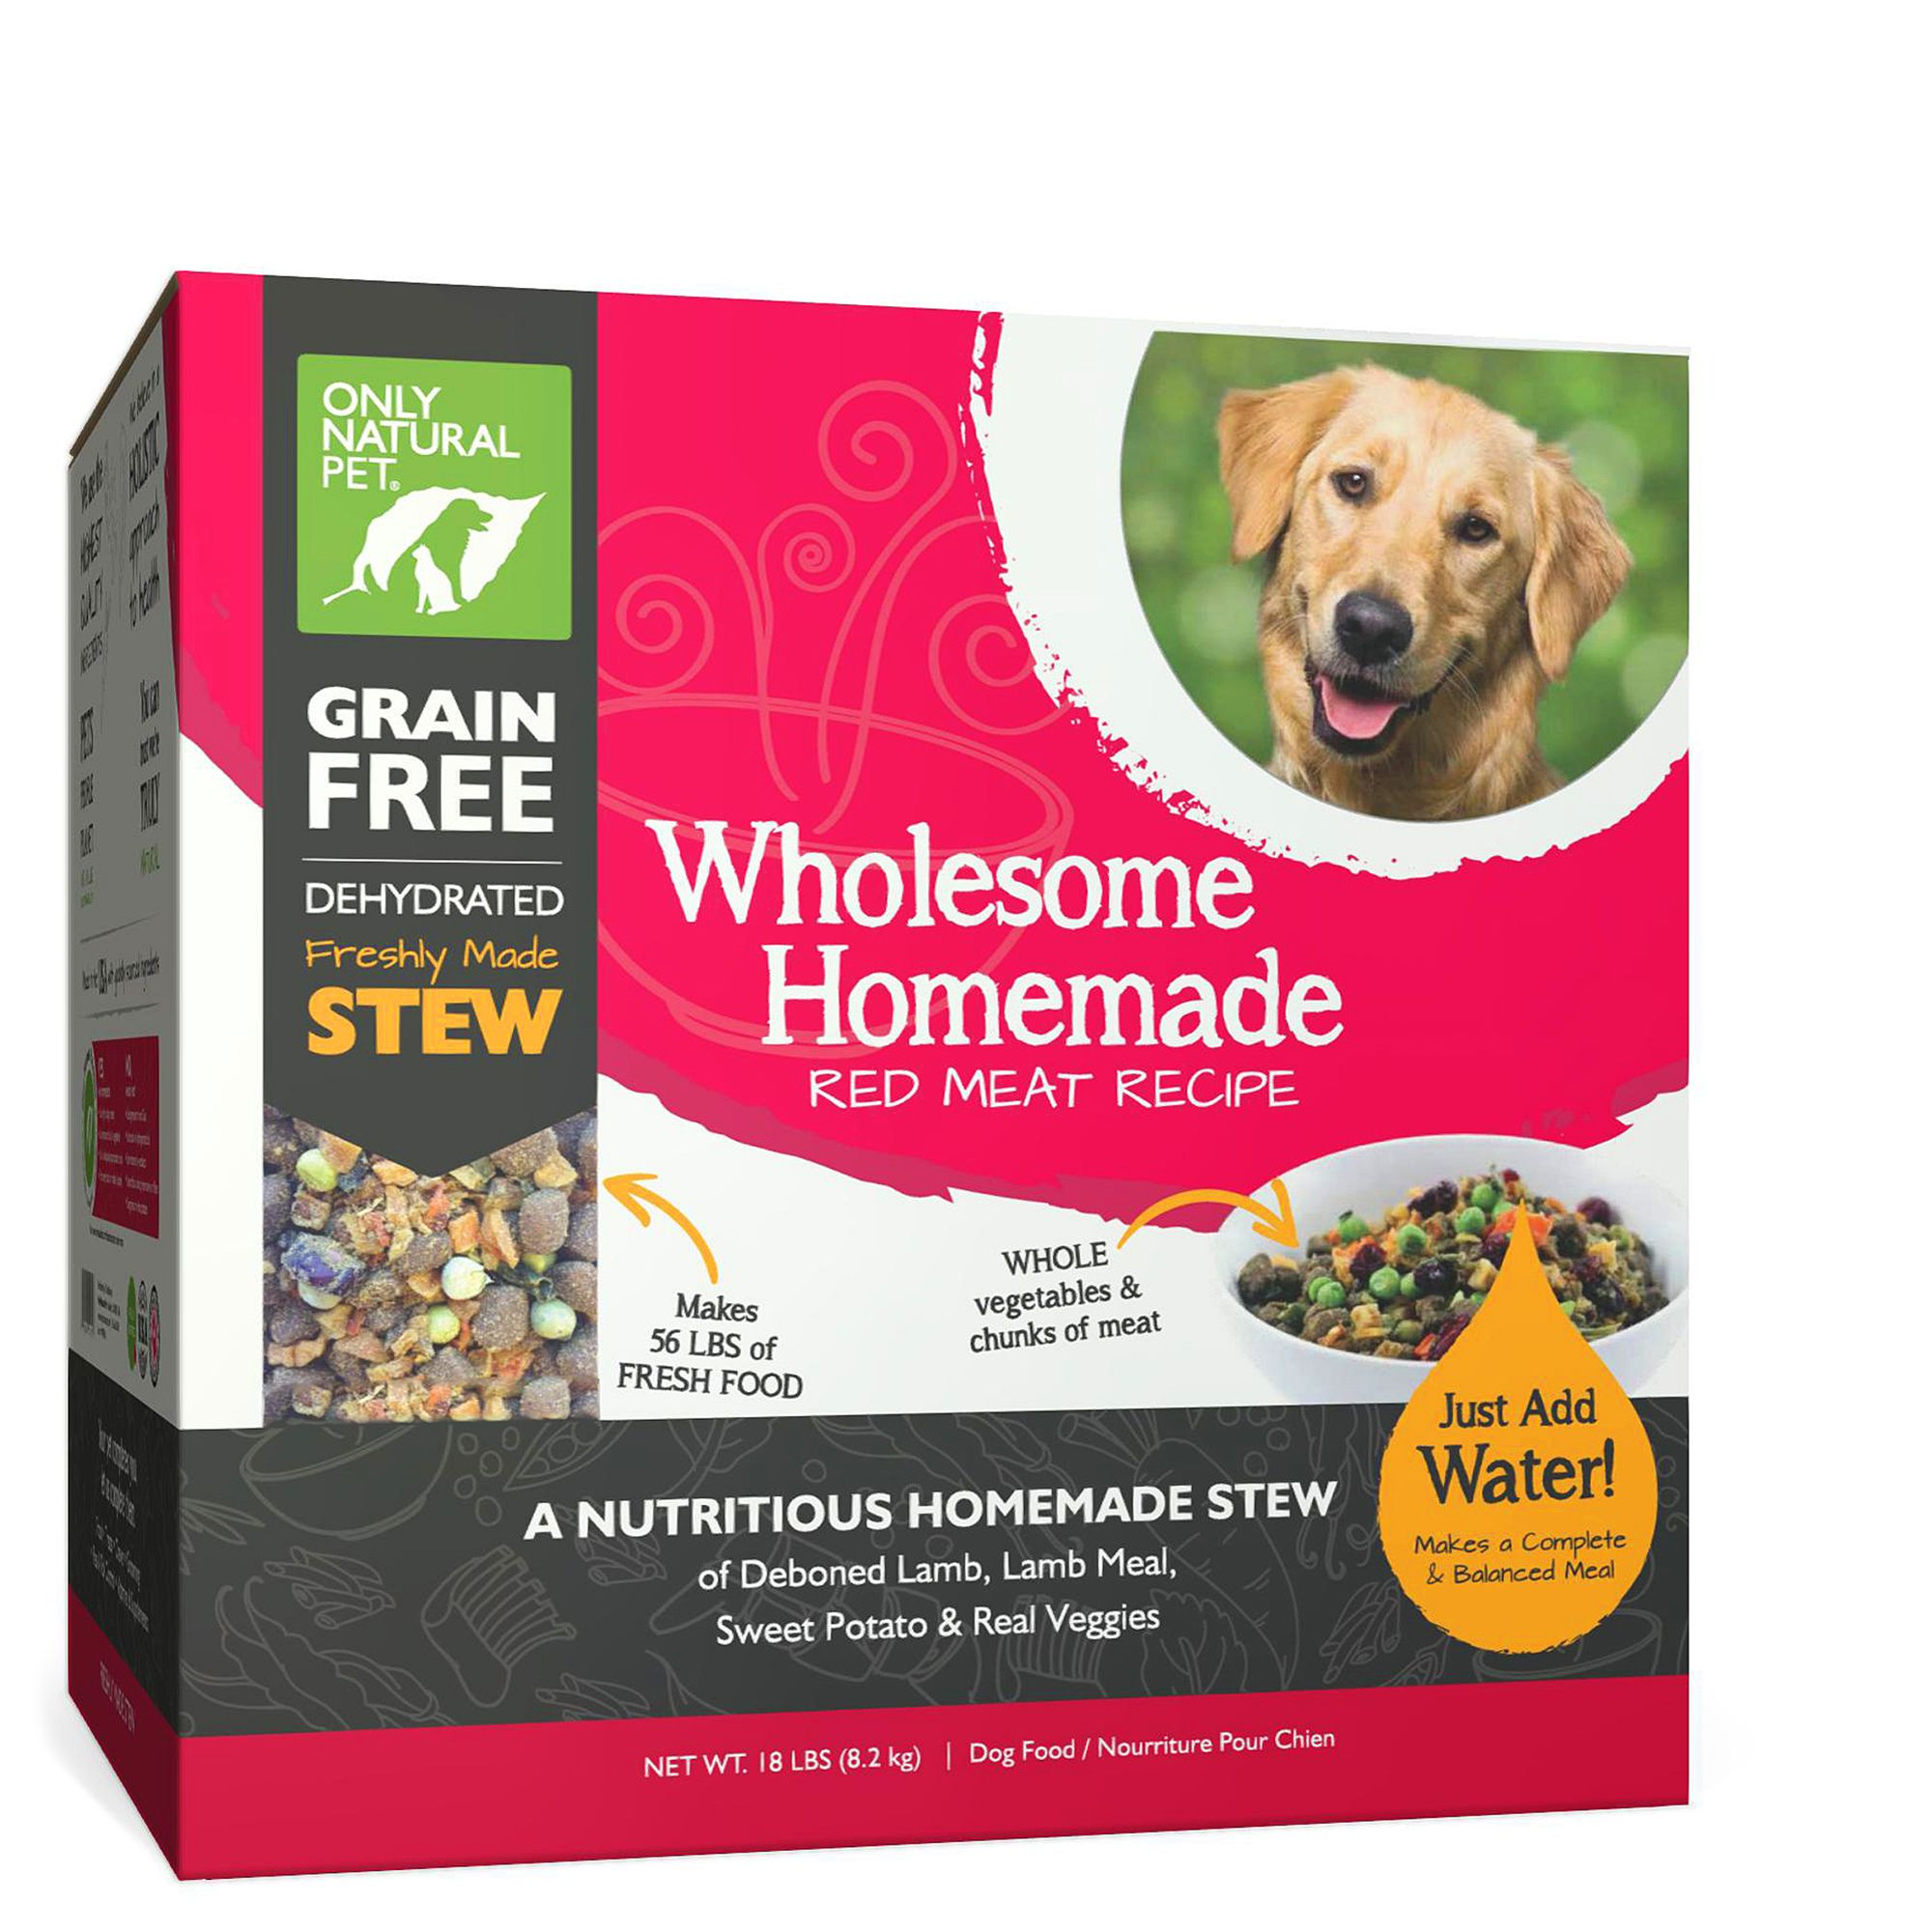 Only Natural Pet Wholesome Homemade Dog Food  Grain Free Dehydrated Red Meat size 18 Lb